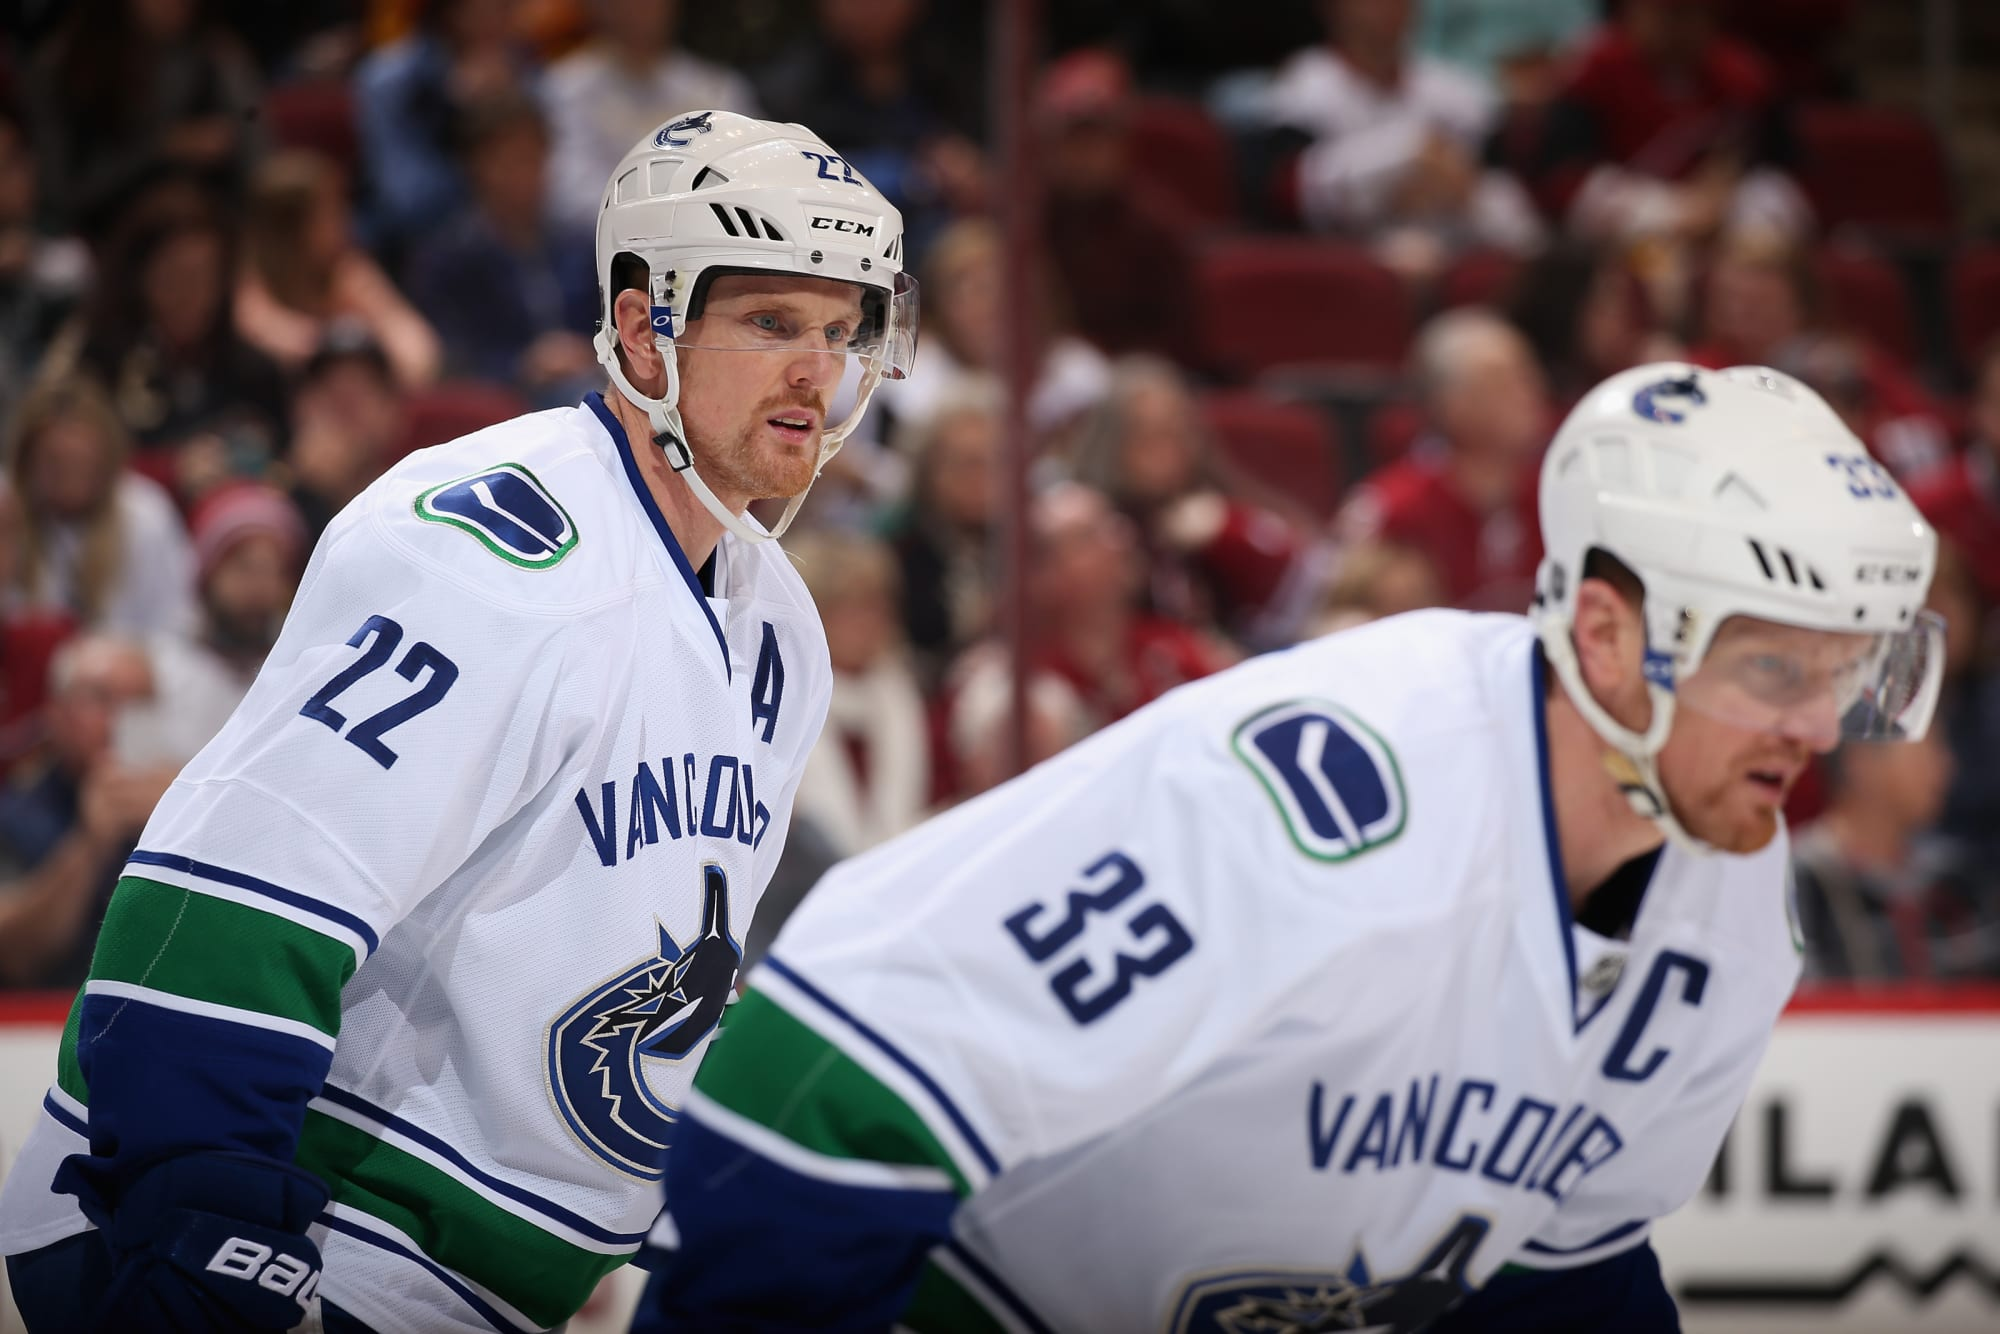 Canucks: Sedin twins named special advisors to the general manager